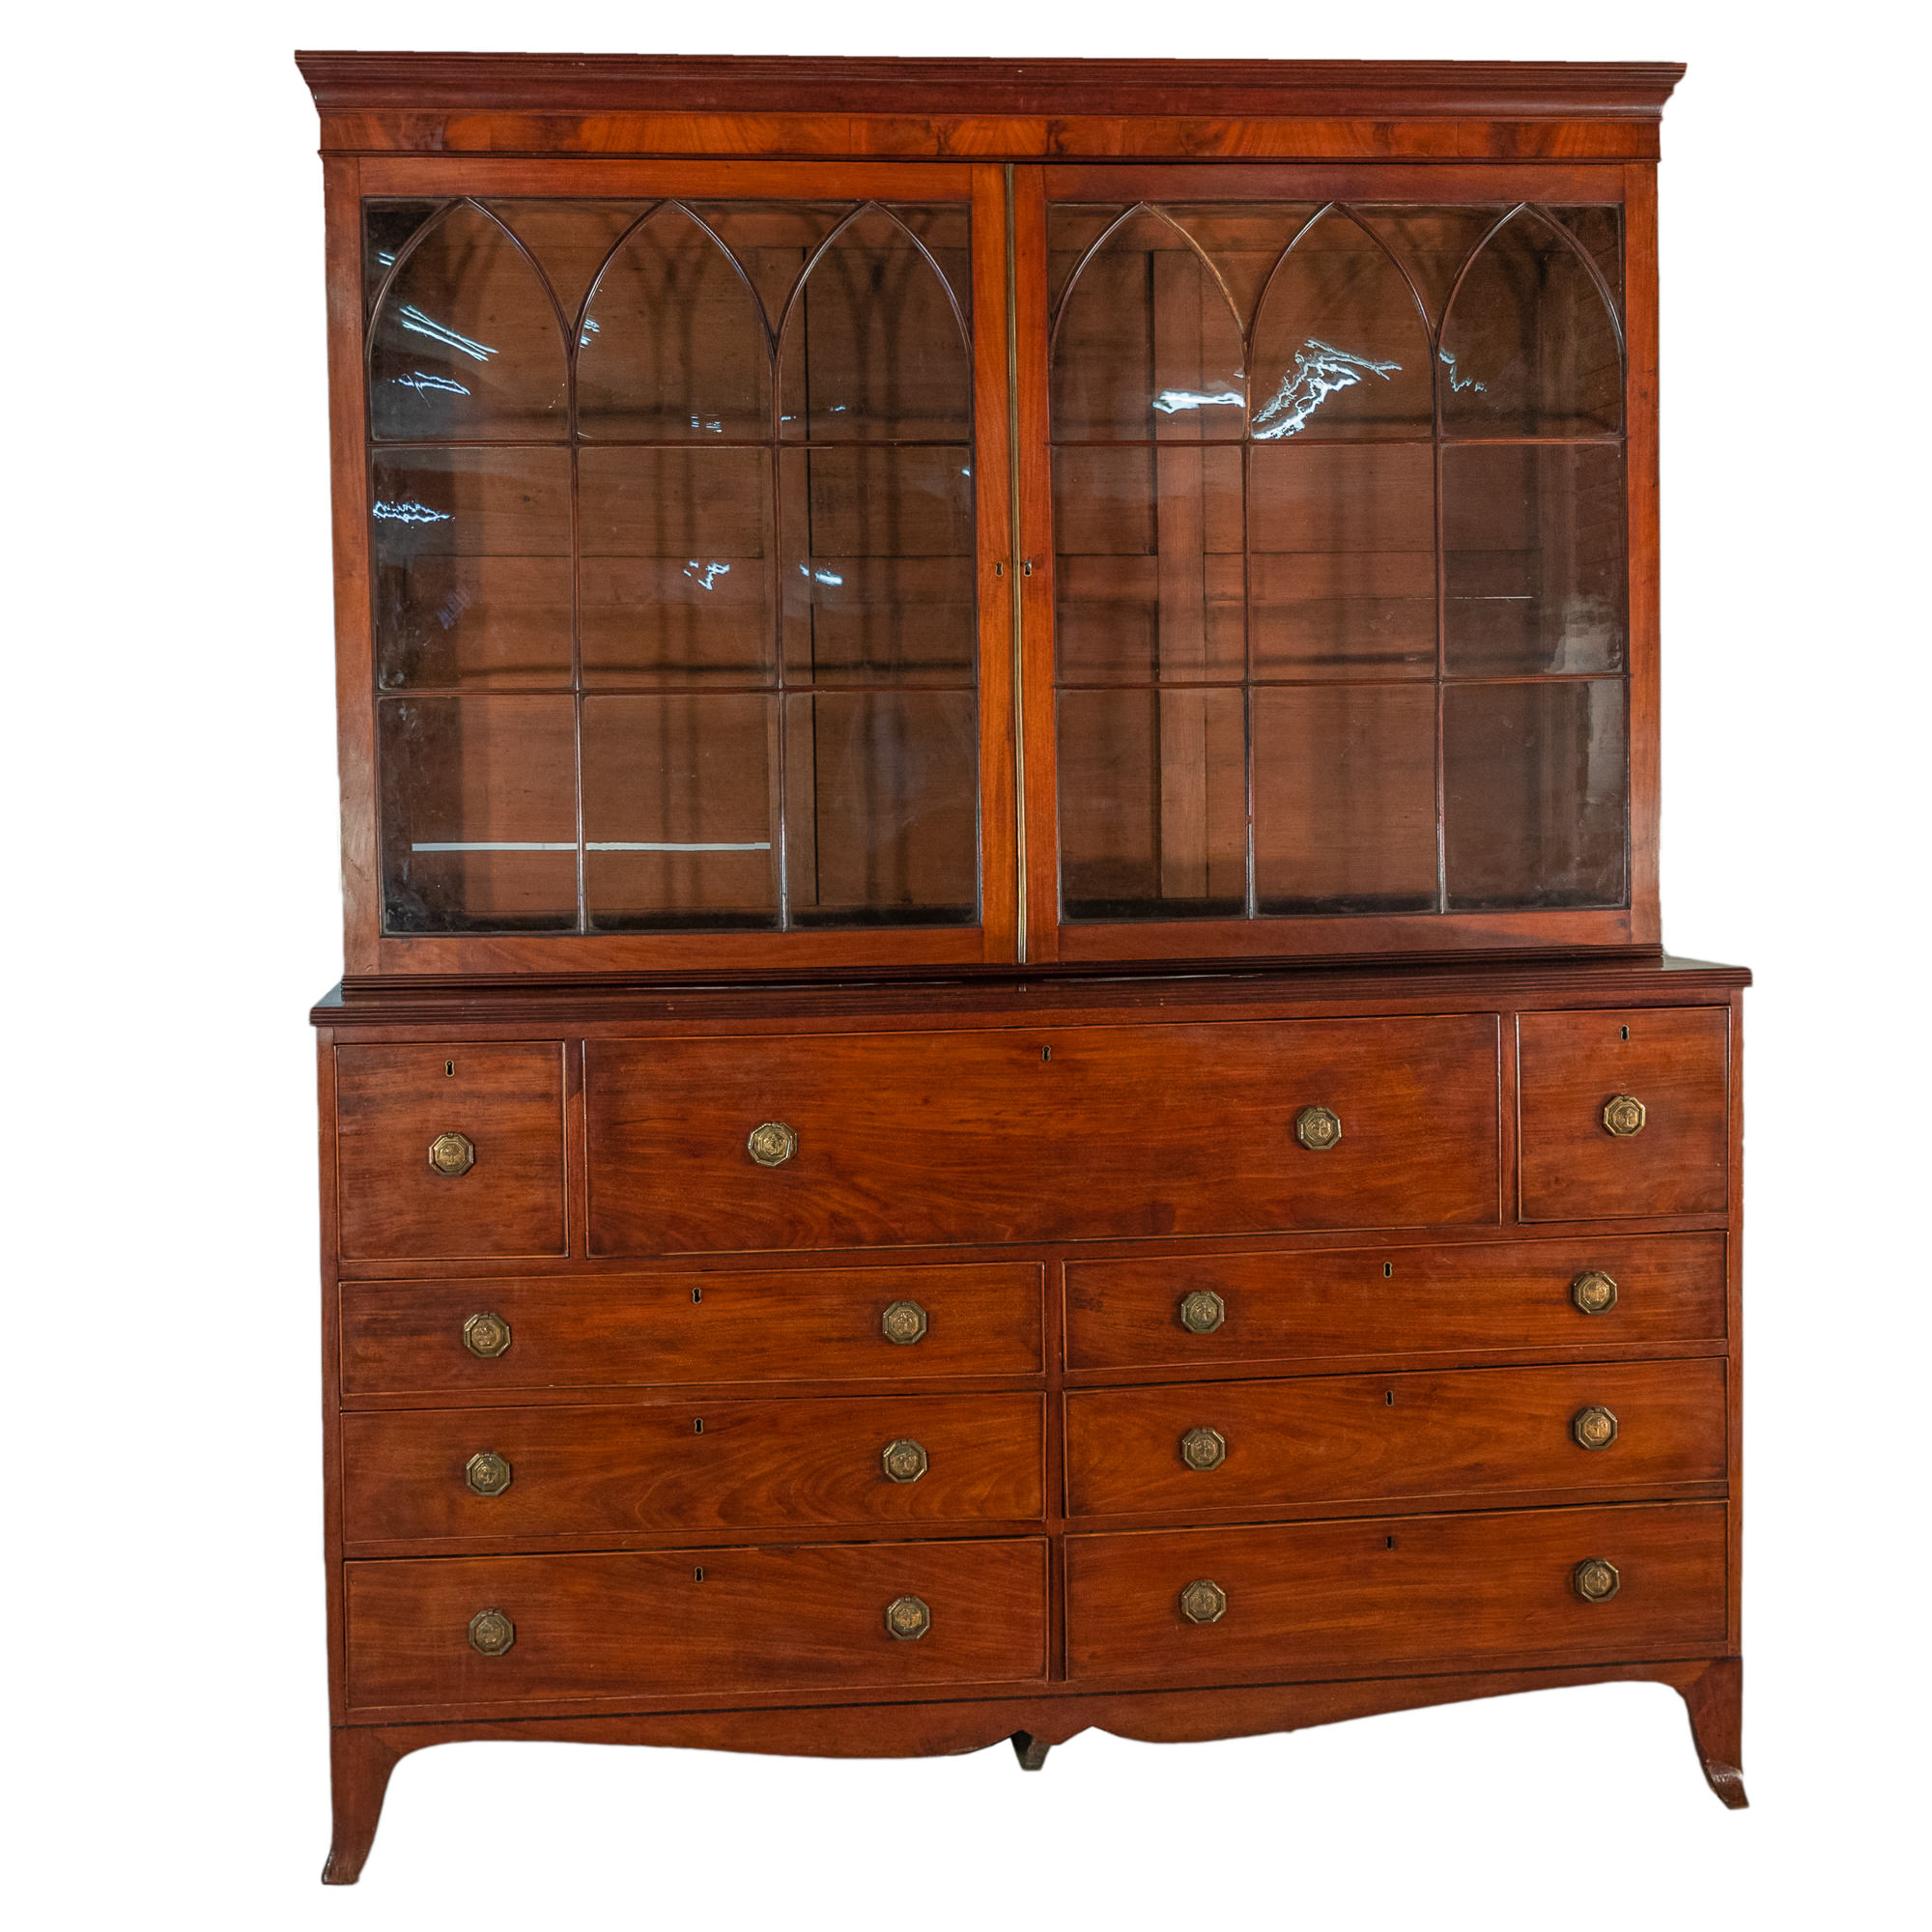 'Rare Extended Double Width George III Mahogany Astragal Glazed Secretaire Bookcase Circa 1800'